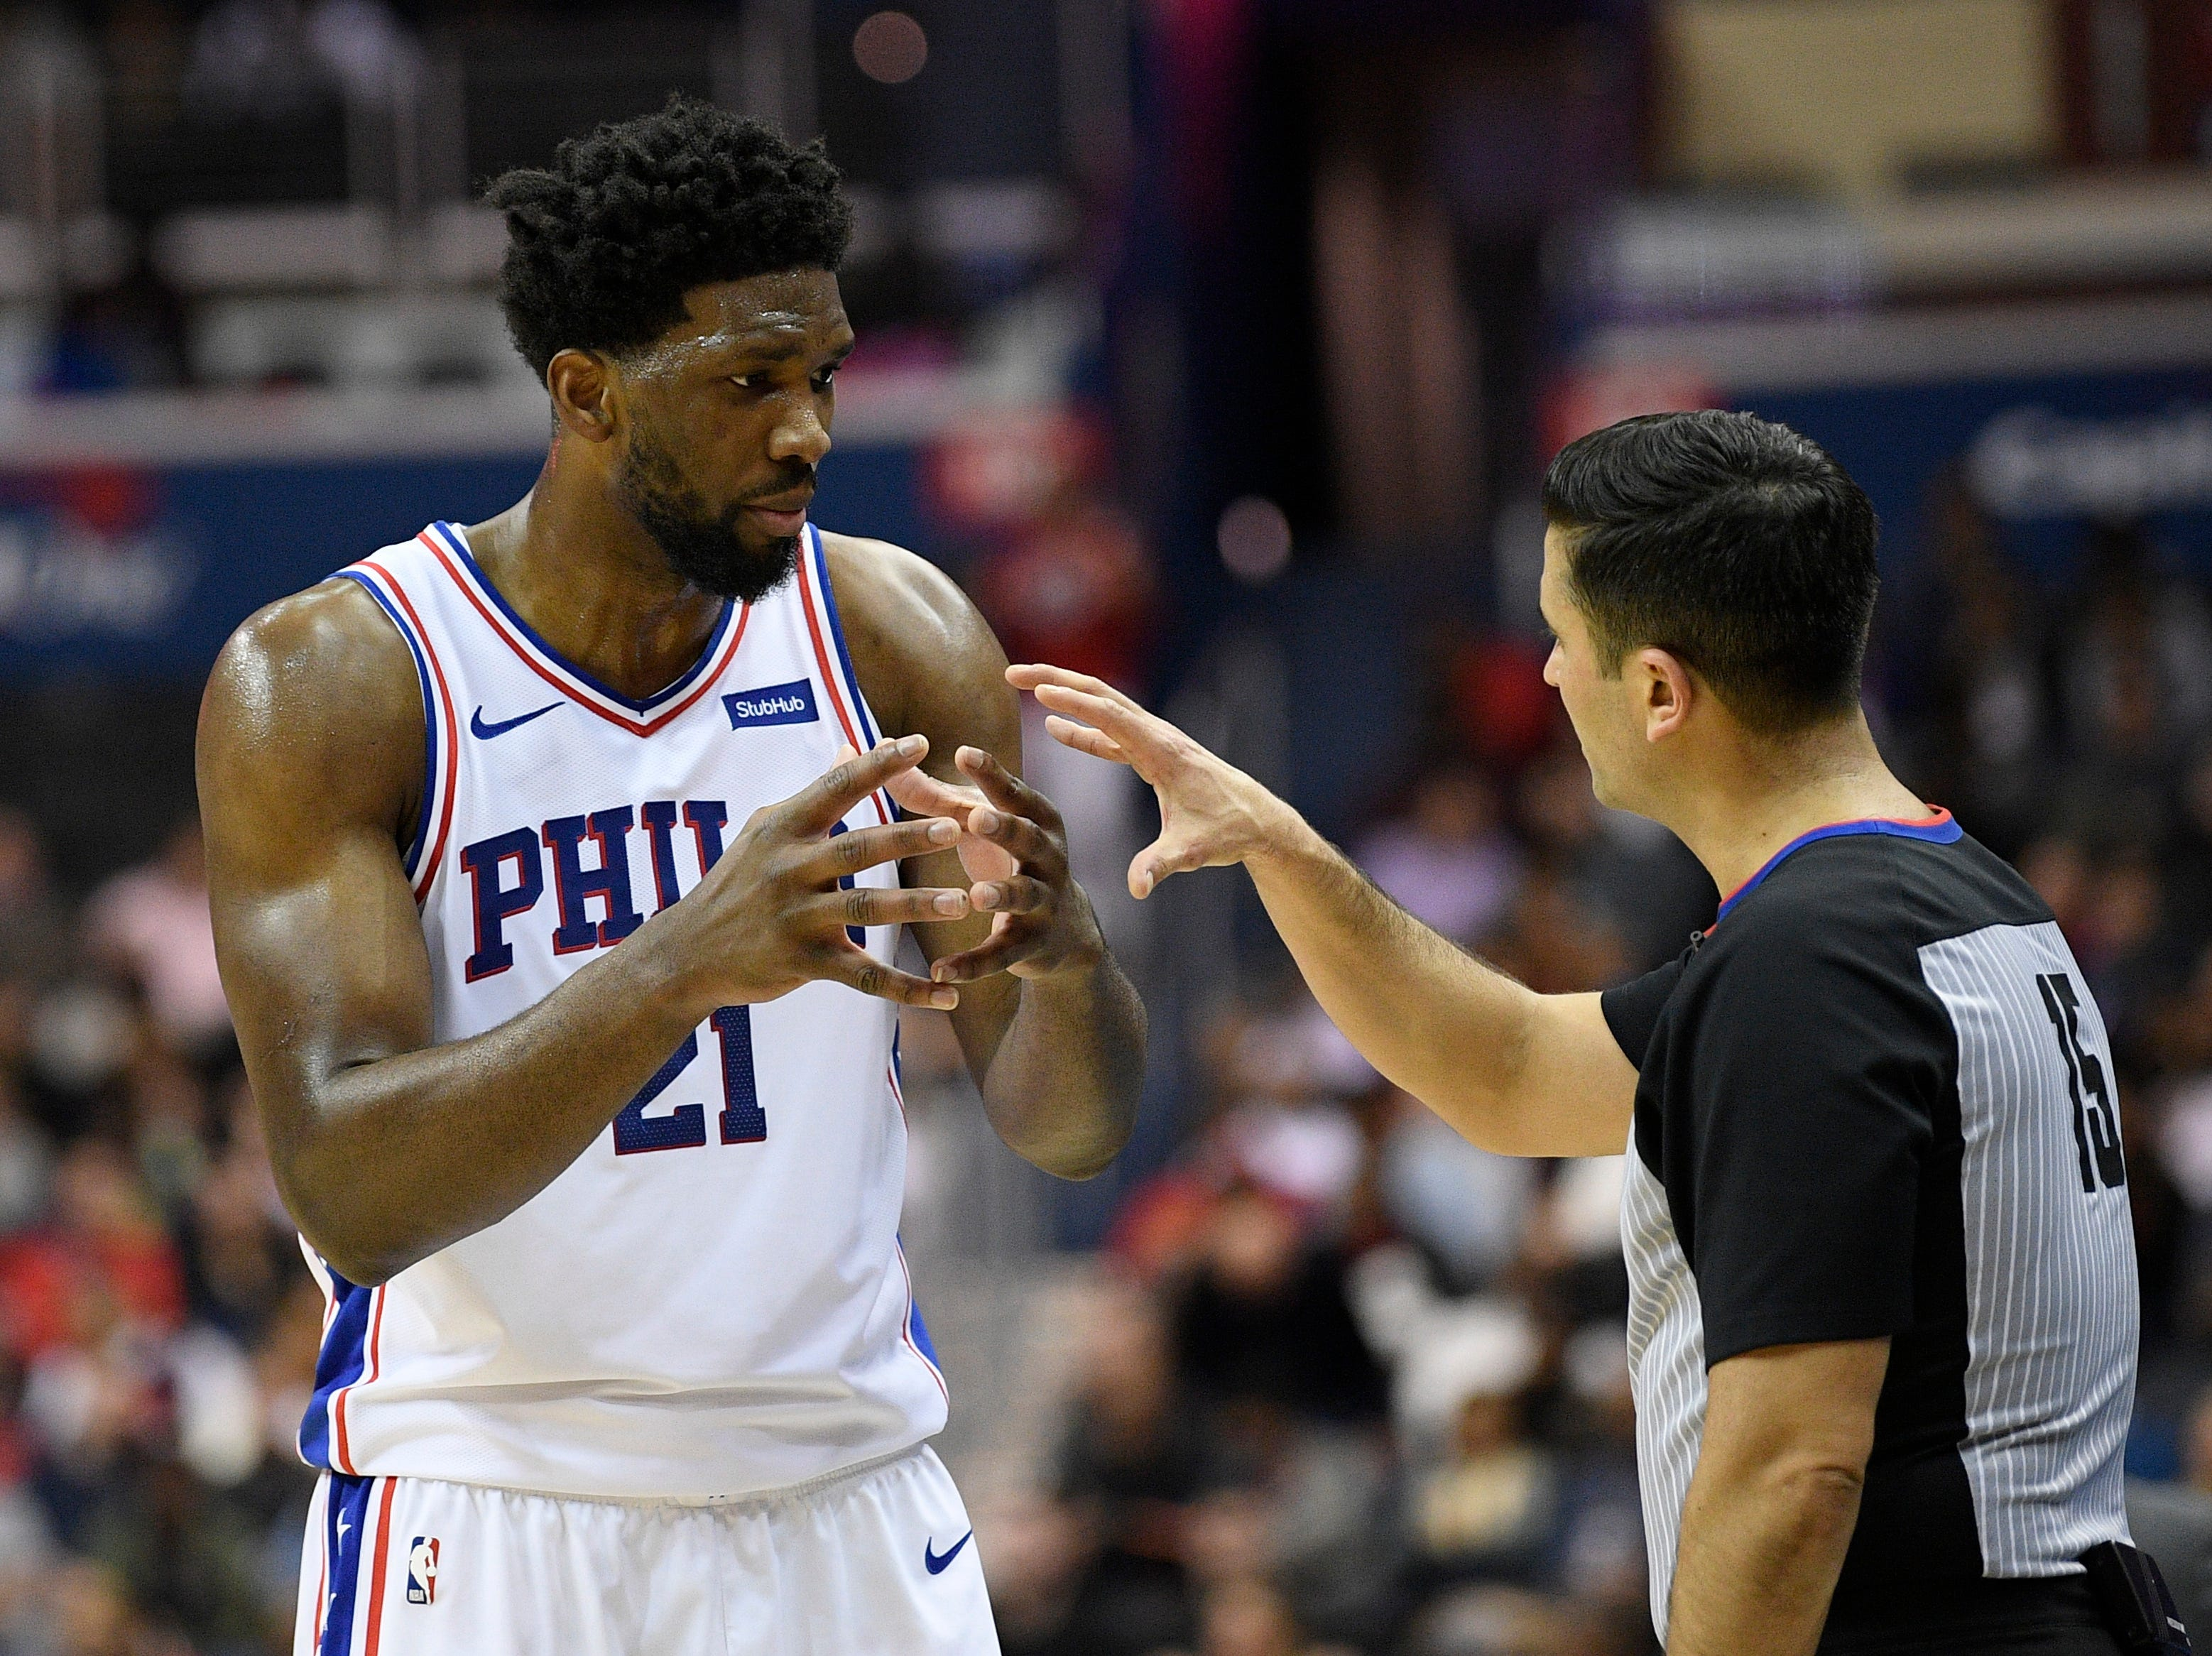 Philadelphia 76ers center Joel Embiid (21) talks with referee Zach Zarba (15) during the first half of an NBA basketball game against the Washington Wizards, Wednesday, Jan. 9, 2019, in Washington. (AP Photo/Nick Wass)